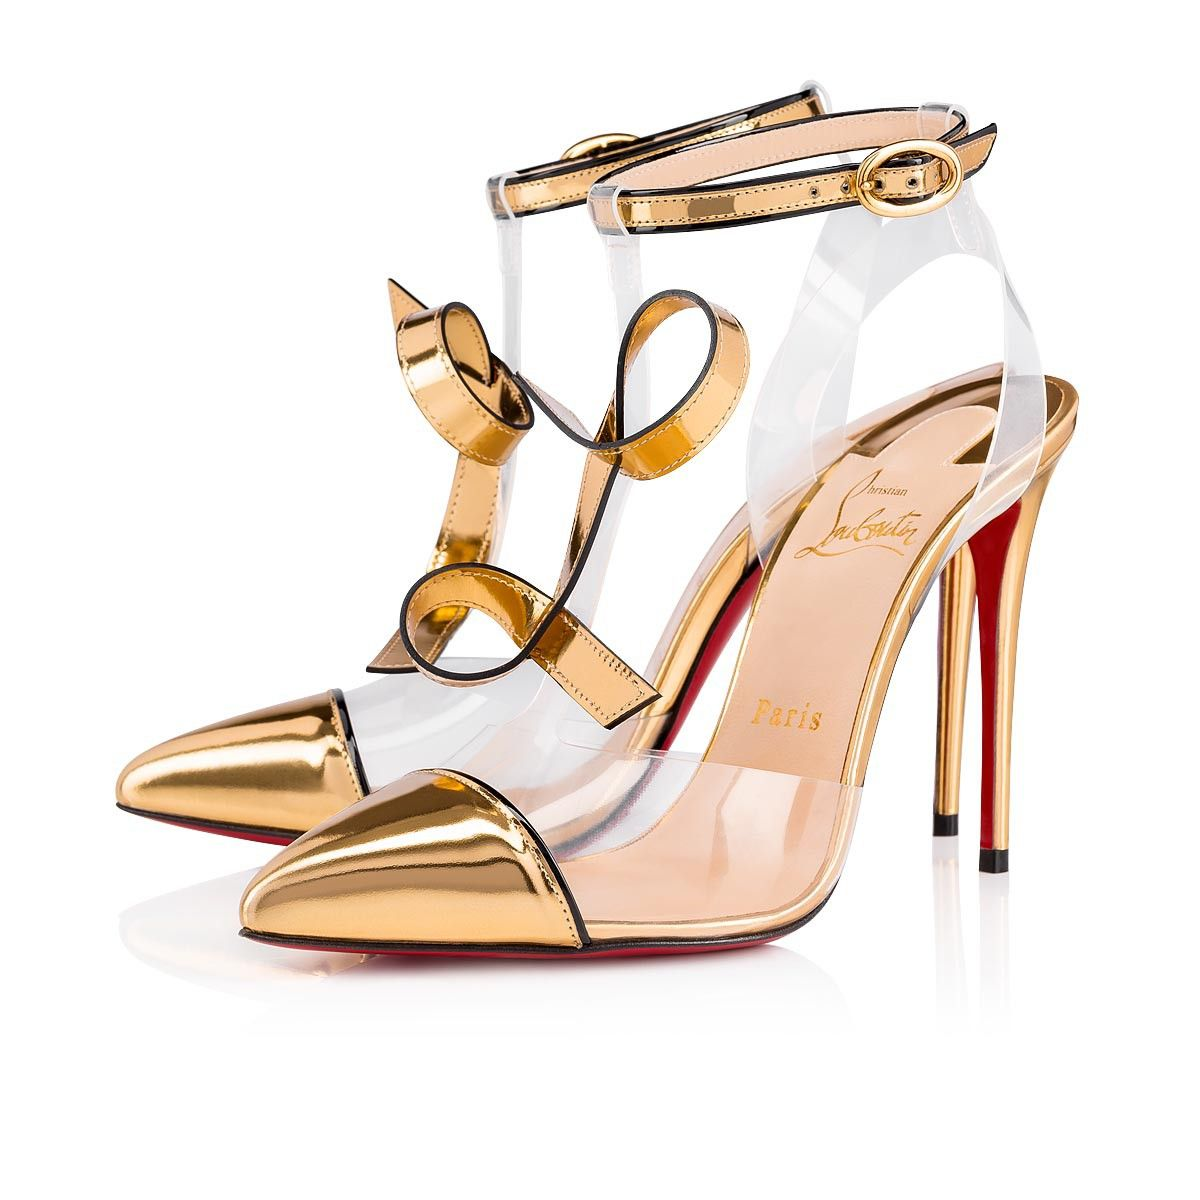 Discussion on this topic: Le nuove scarpe Louboutin della serie LOVE , le-nuove-scarpe-louboutin-della-serie-love/